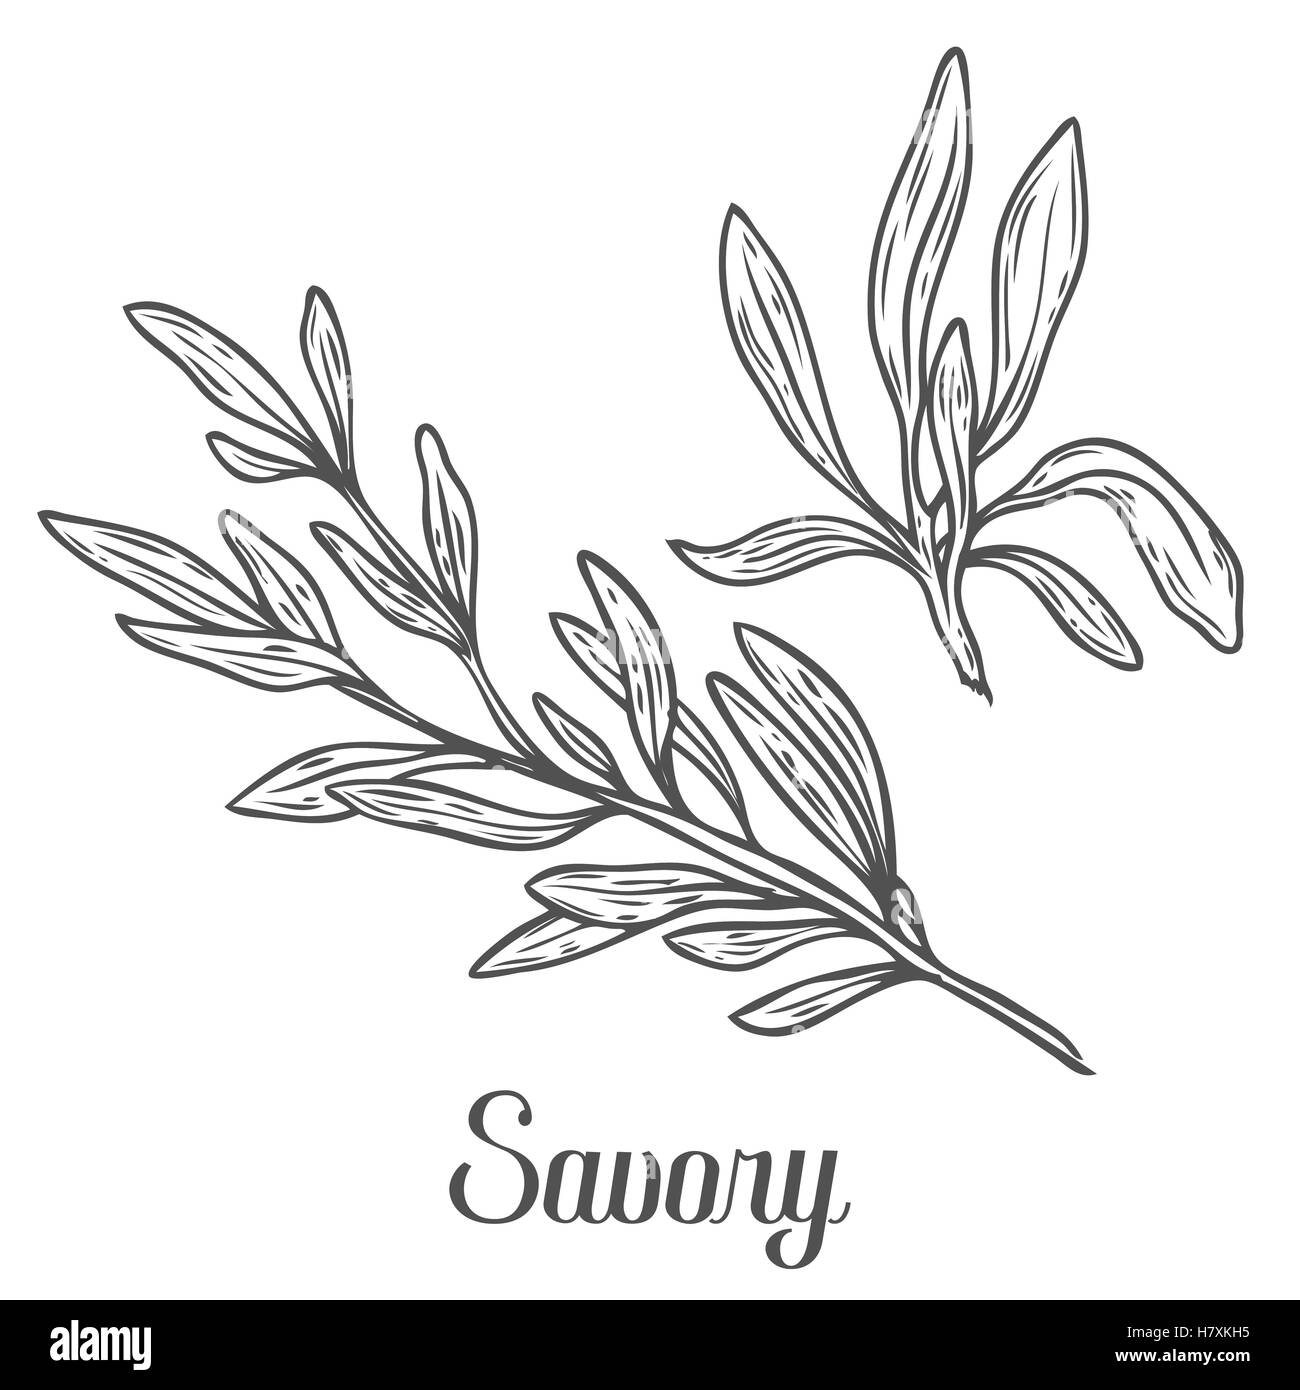 Savory vector hand drawn sketch vector illustration. Culinary herb spice for cooking, medical, gardening design. - Stock Vector